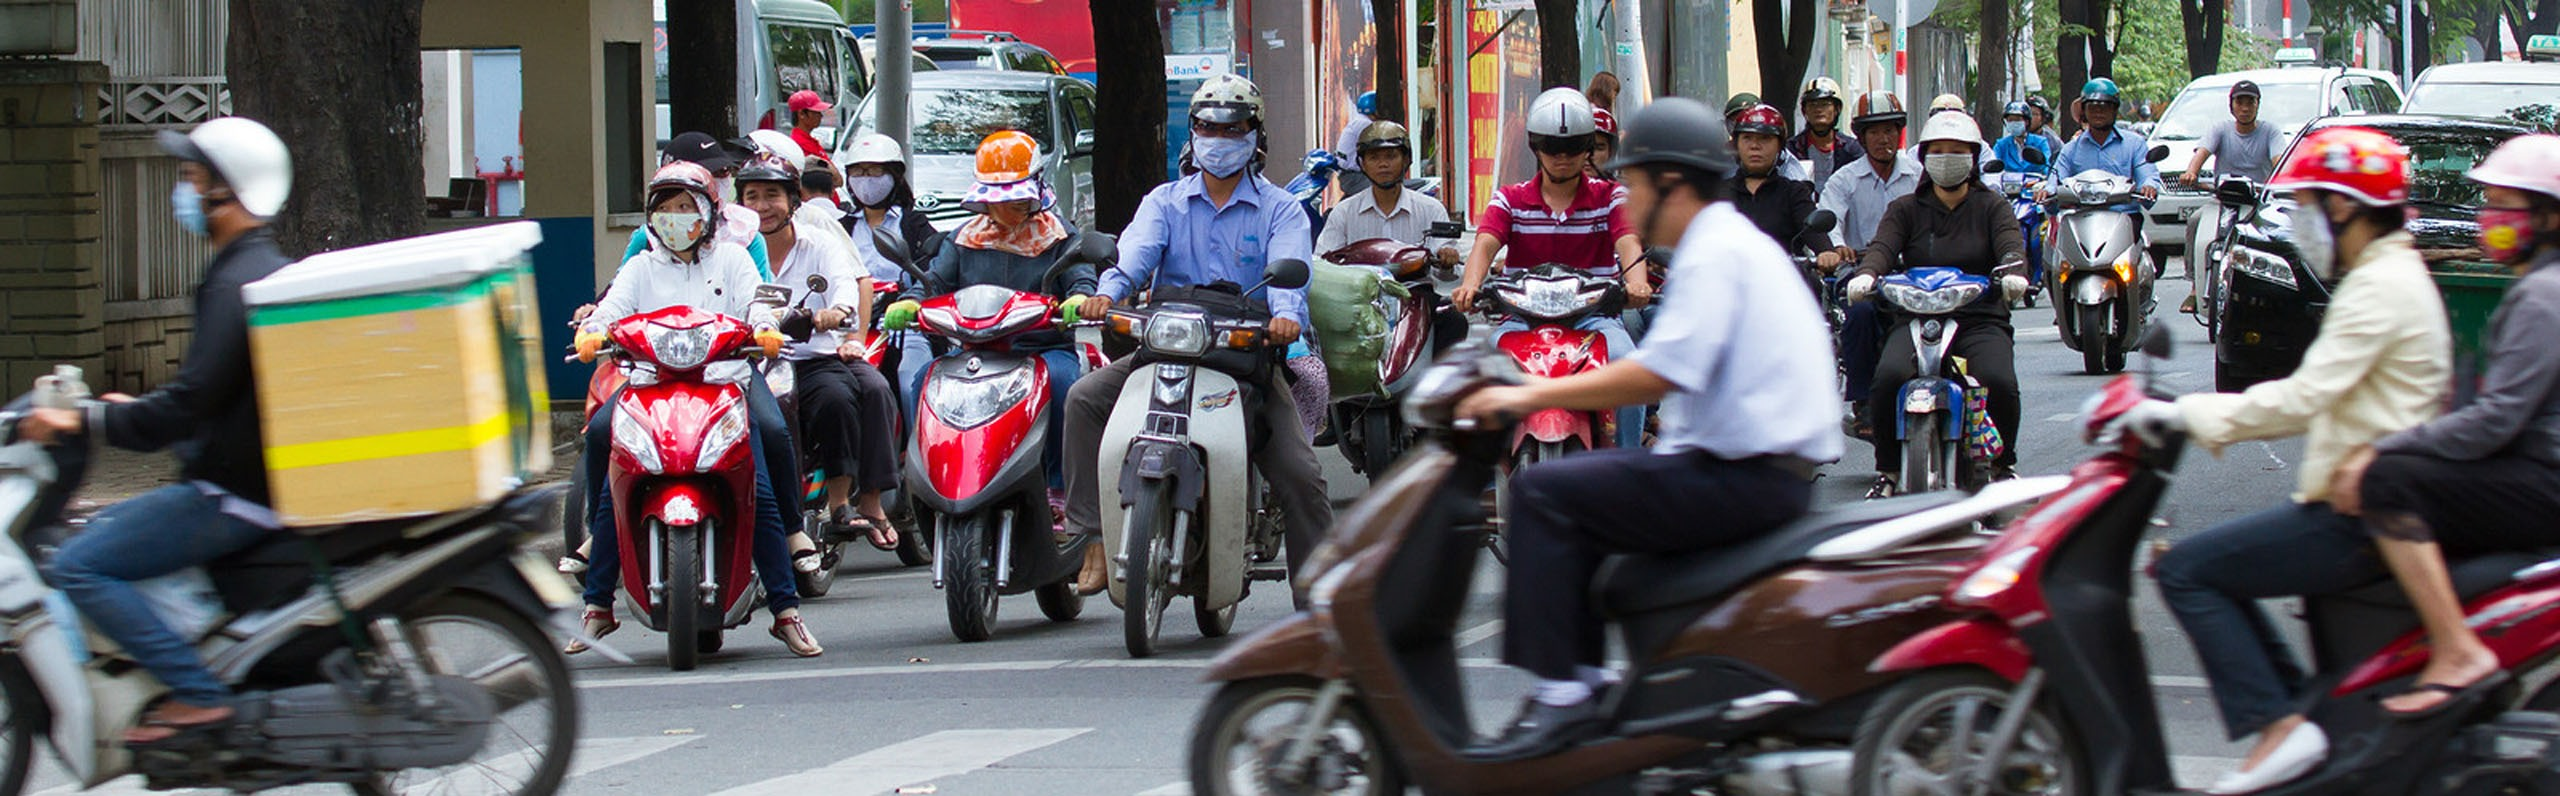 Vietnam Motorbike Tours: 10 Things You Should Know